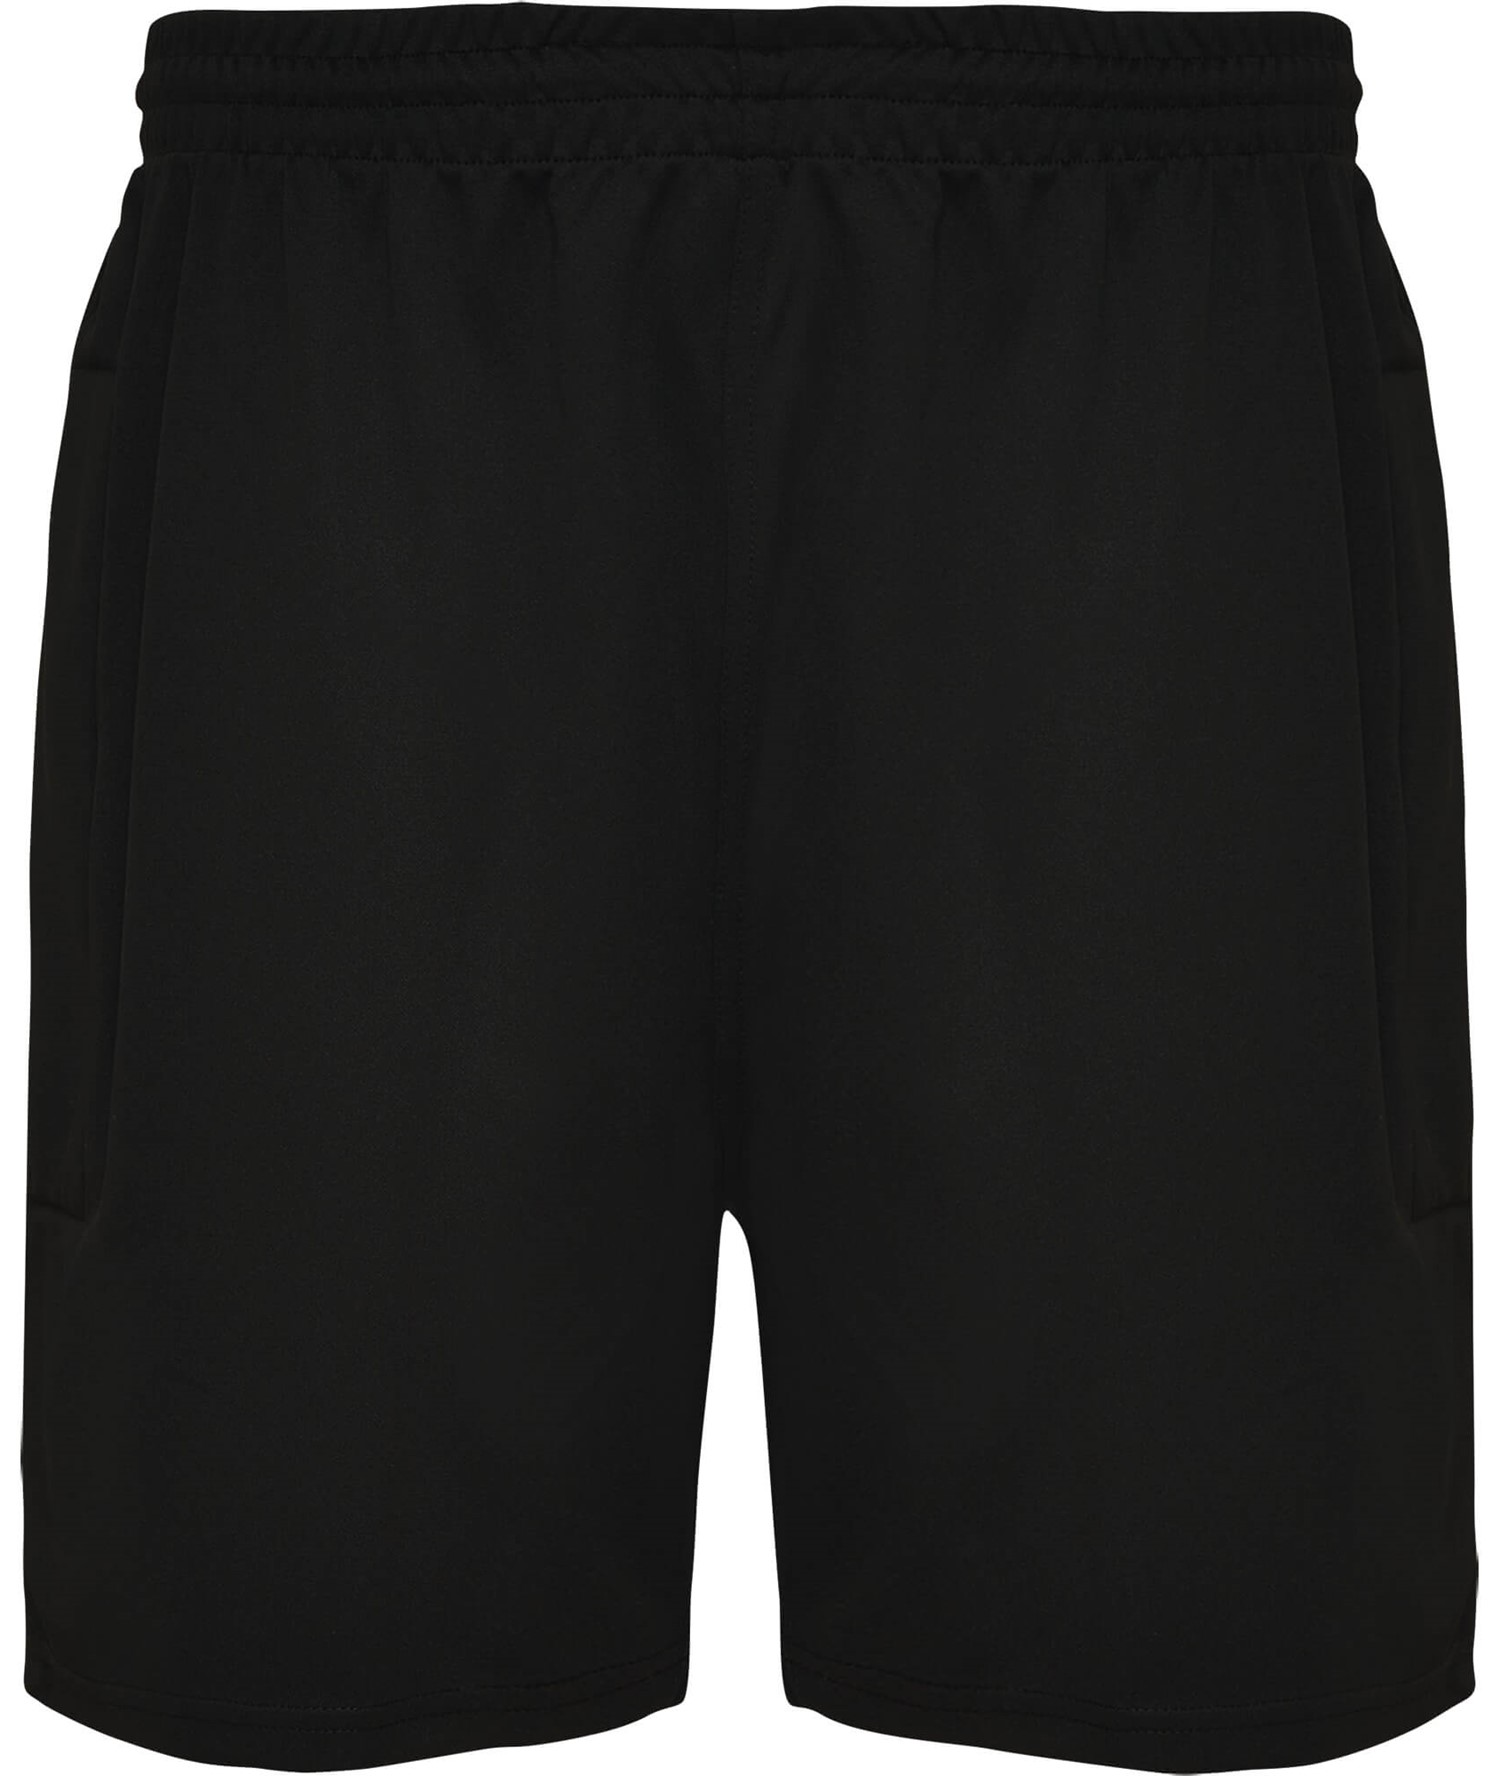 BERMUDA SHORTS ROLY GOALKEEPER SHORTS